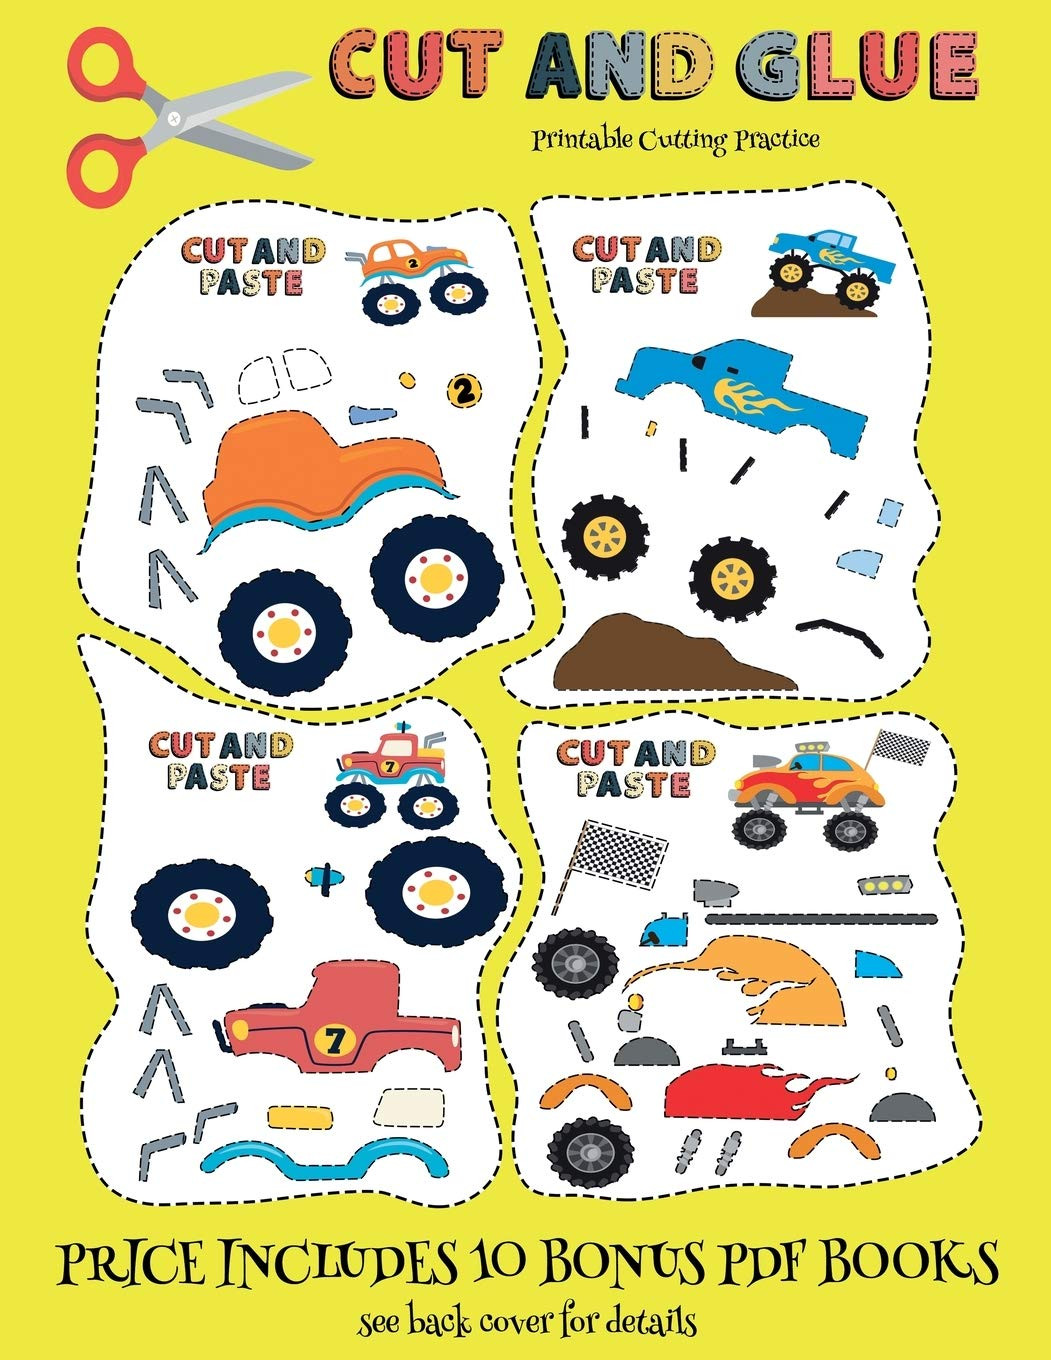 Printable Cutting Worksheets for Preschoolers Printable Cutting Practice Cut and Glue Monster Trucks